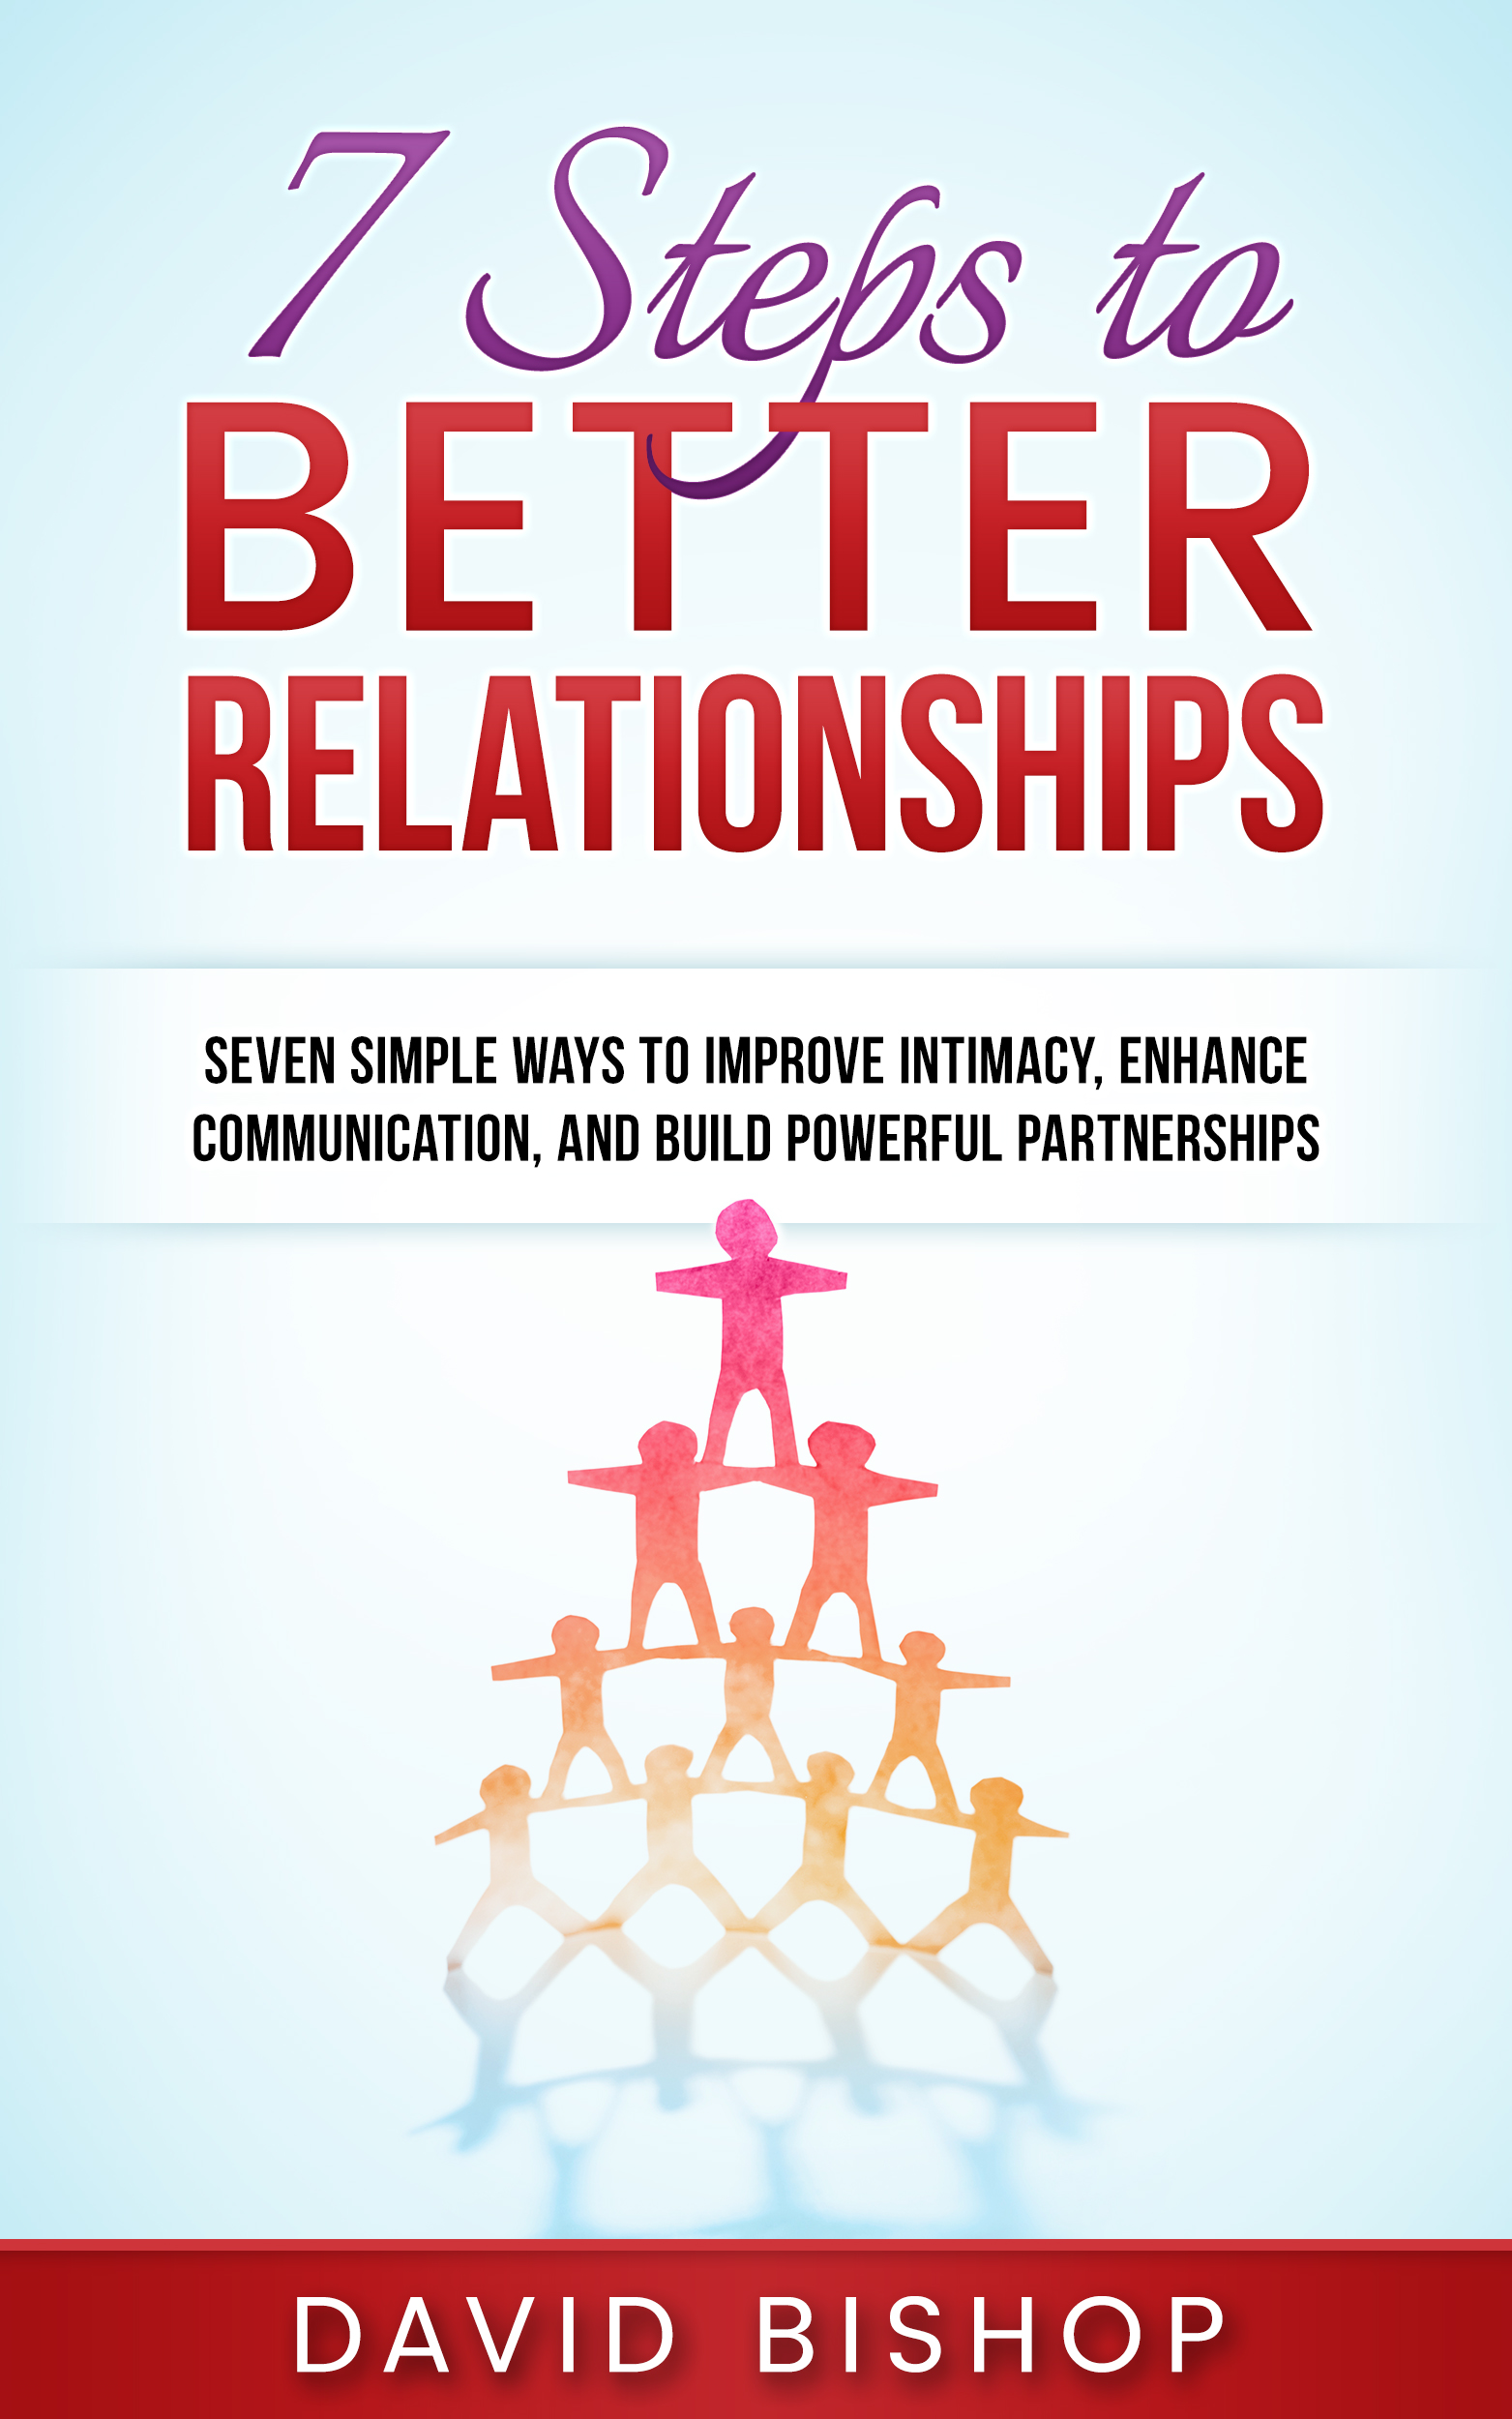 7 Steps to Better Relationships